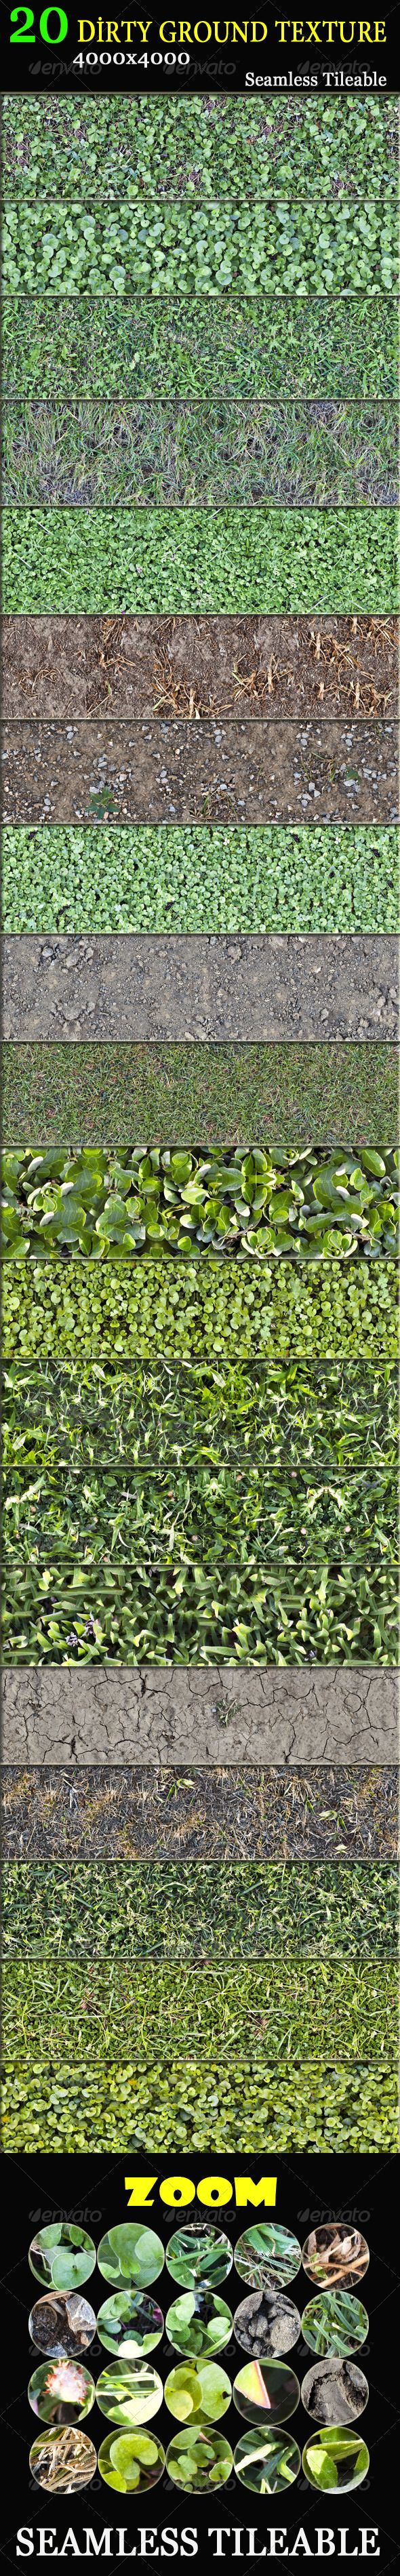 20 Dirty Ground Textures #GraphicRiver 20 Dirty Ground Textures Seamless, tileable. 4000×4000 High Quality Here are some example pictures I try to use as a photoshop pattern Example 1 ( Before ) ( After ) Example 2 ( Before ) ( After ) Example 3 ( Before ) ( After ) Please rate after you buy Singer, Songwriter, Composer. MY VARIOUS SOUNDS COLLECTIONS Save Your Money with my various Music Packs Each of these pack includes several music track swith a promotional price for the pack. So, you can…